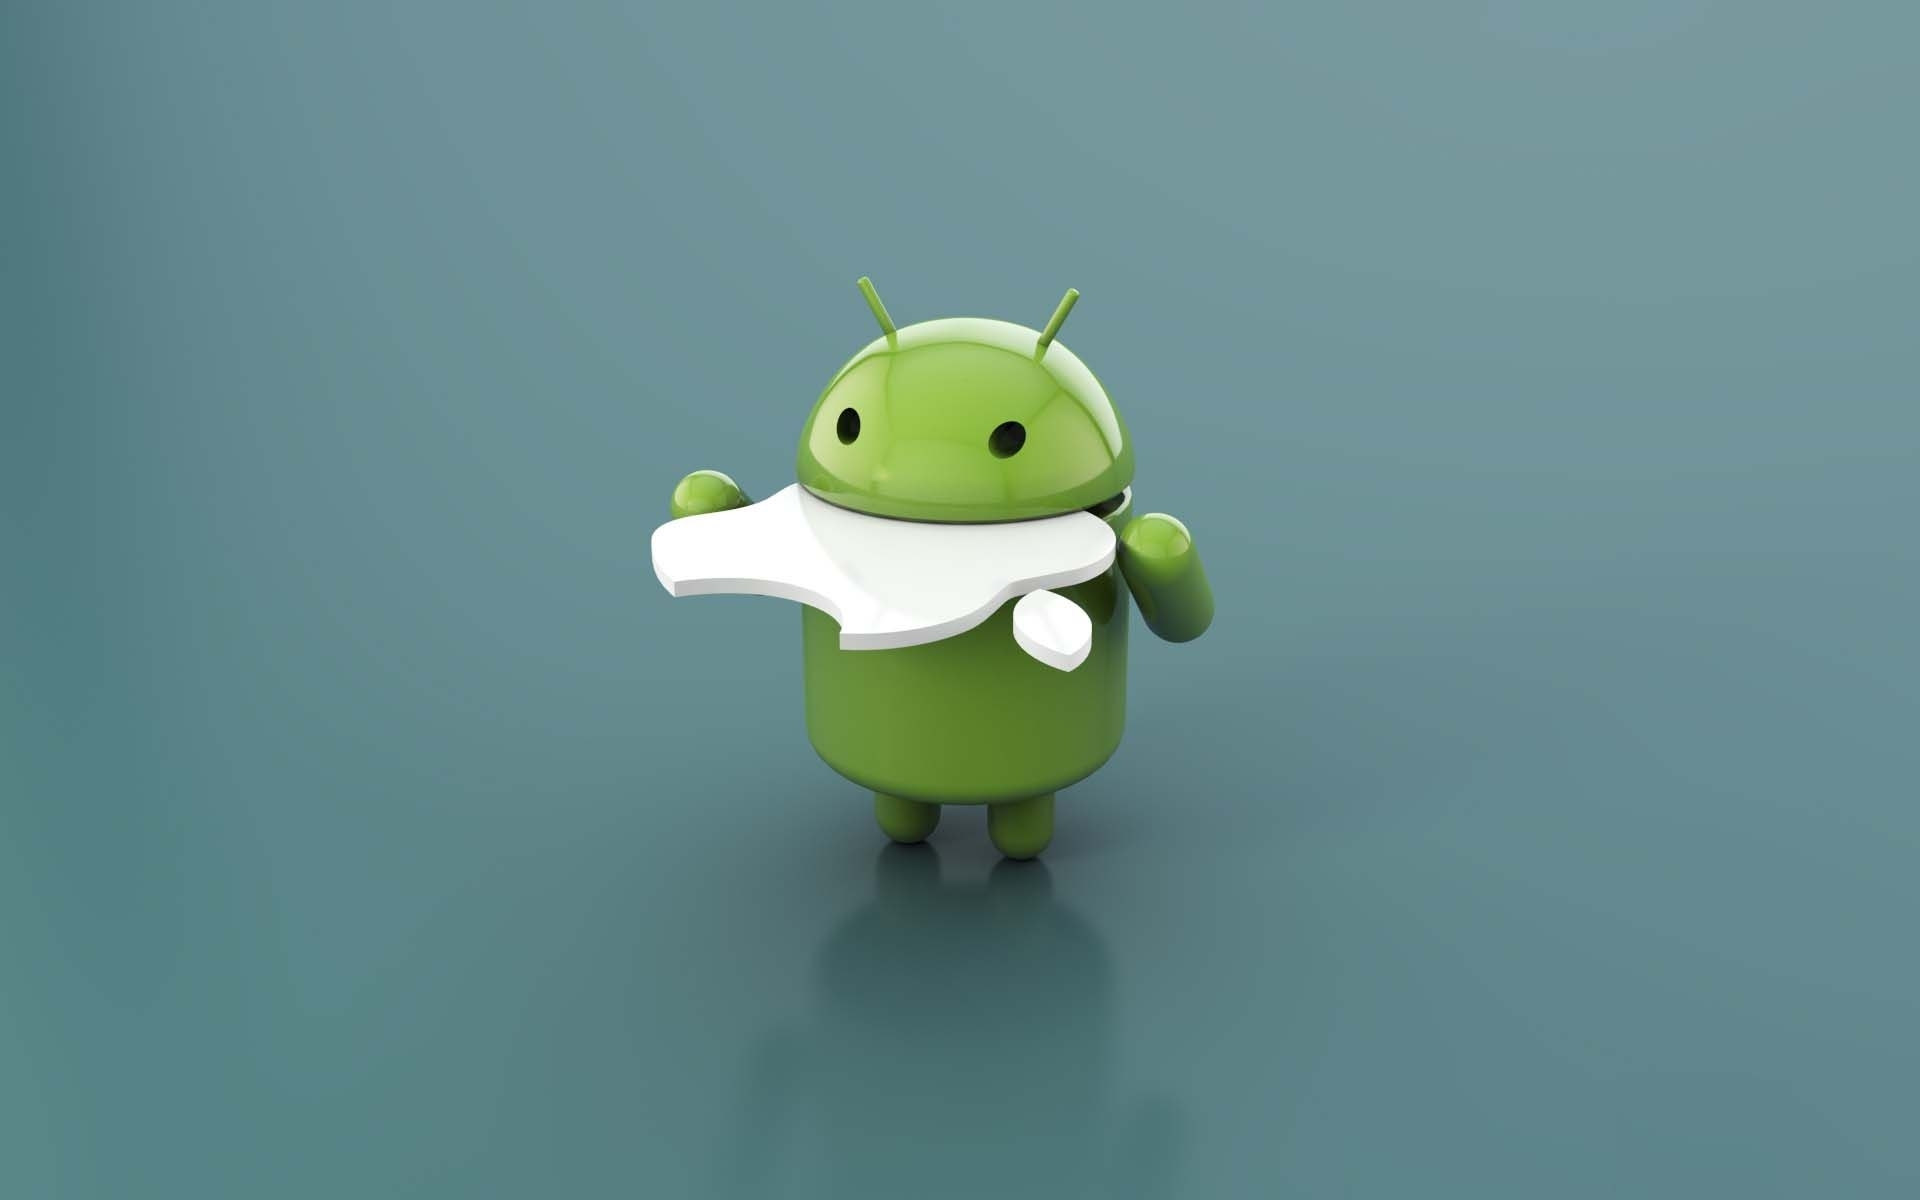 android vs apple desktop wallpaper | hd brands and logos wallpapers